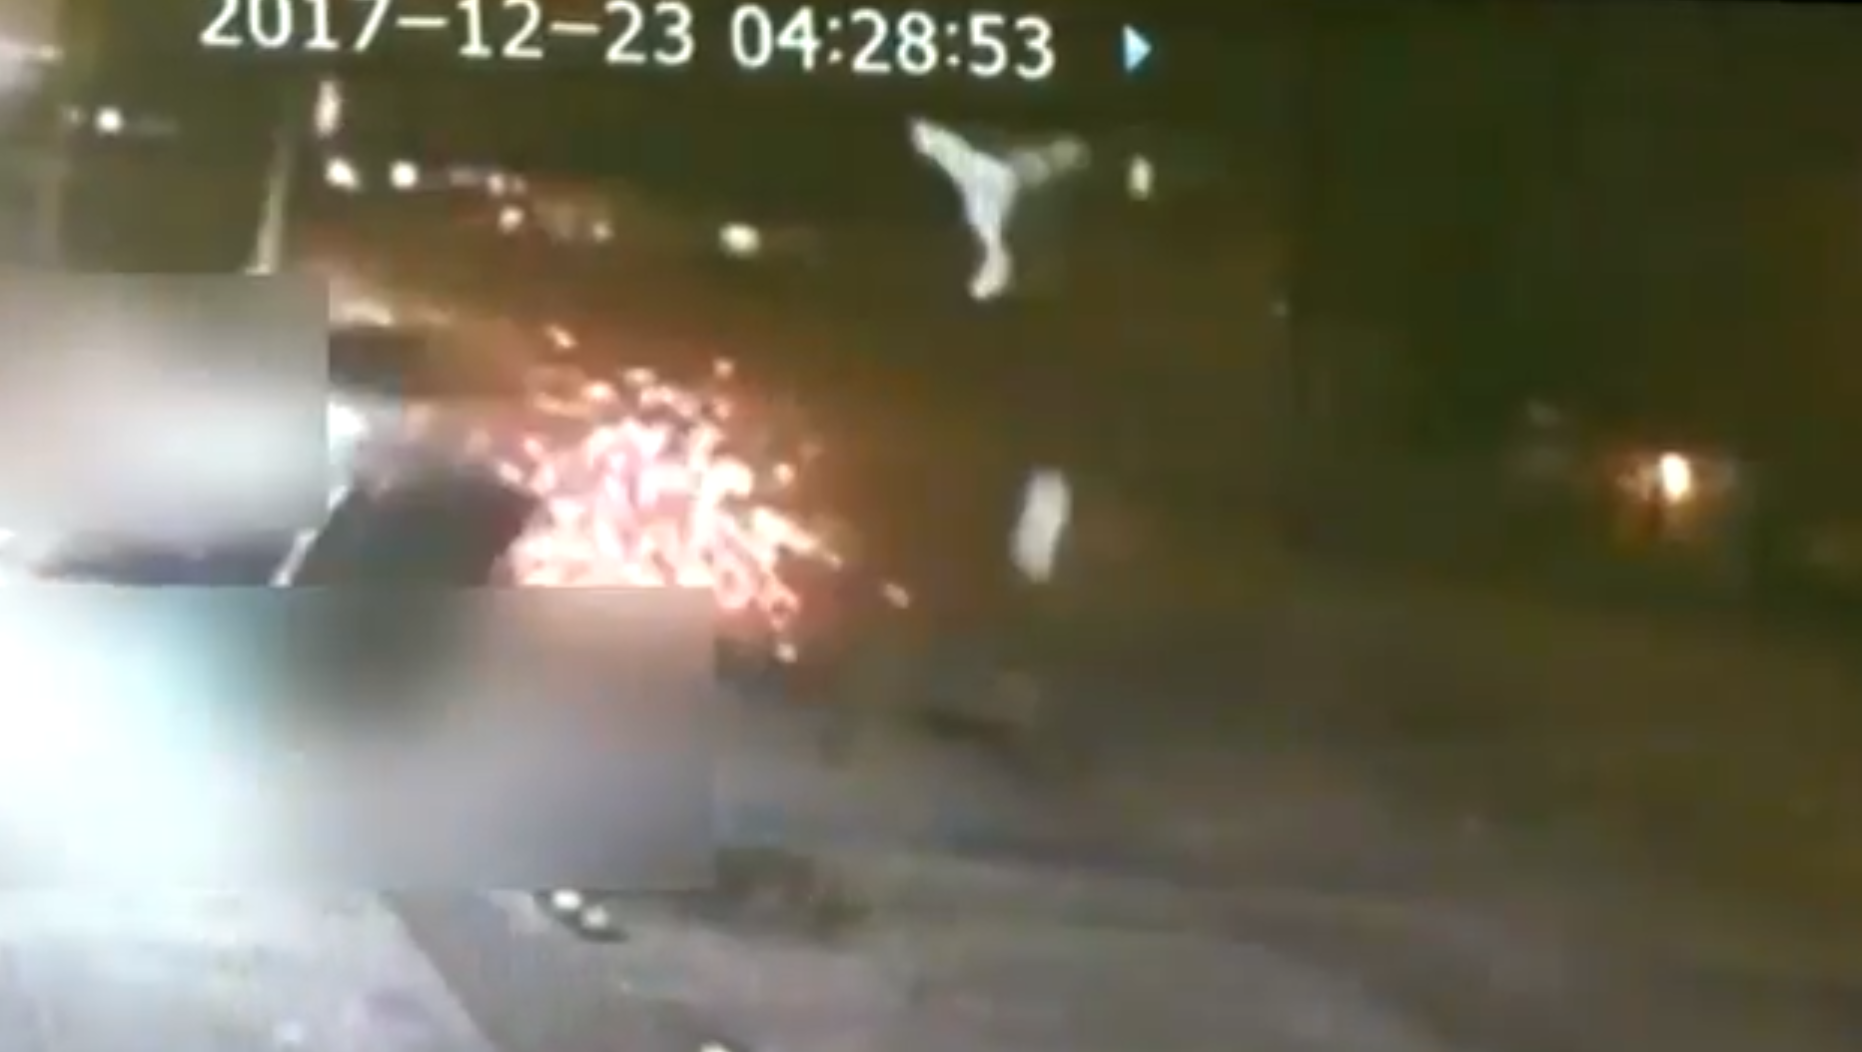 Surveillance video shows the impact of Greenacre's deadly hit-and-run. (WPEC)